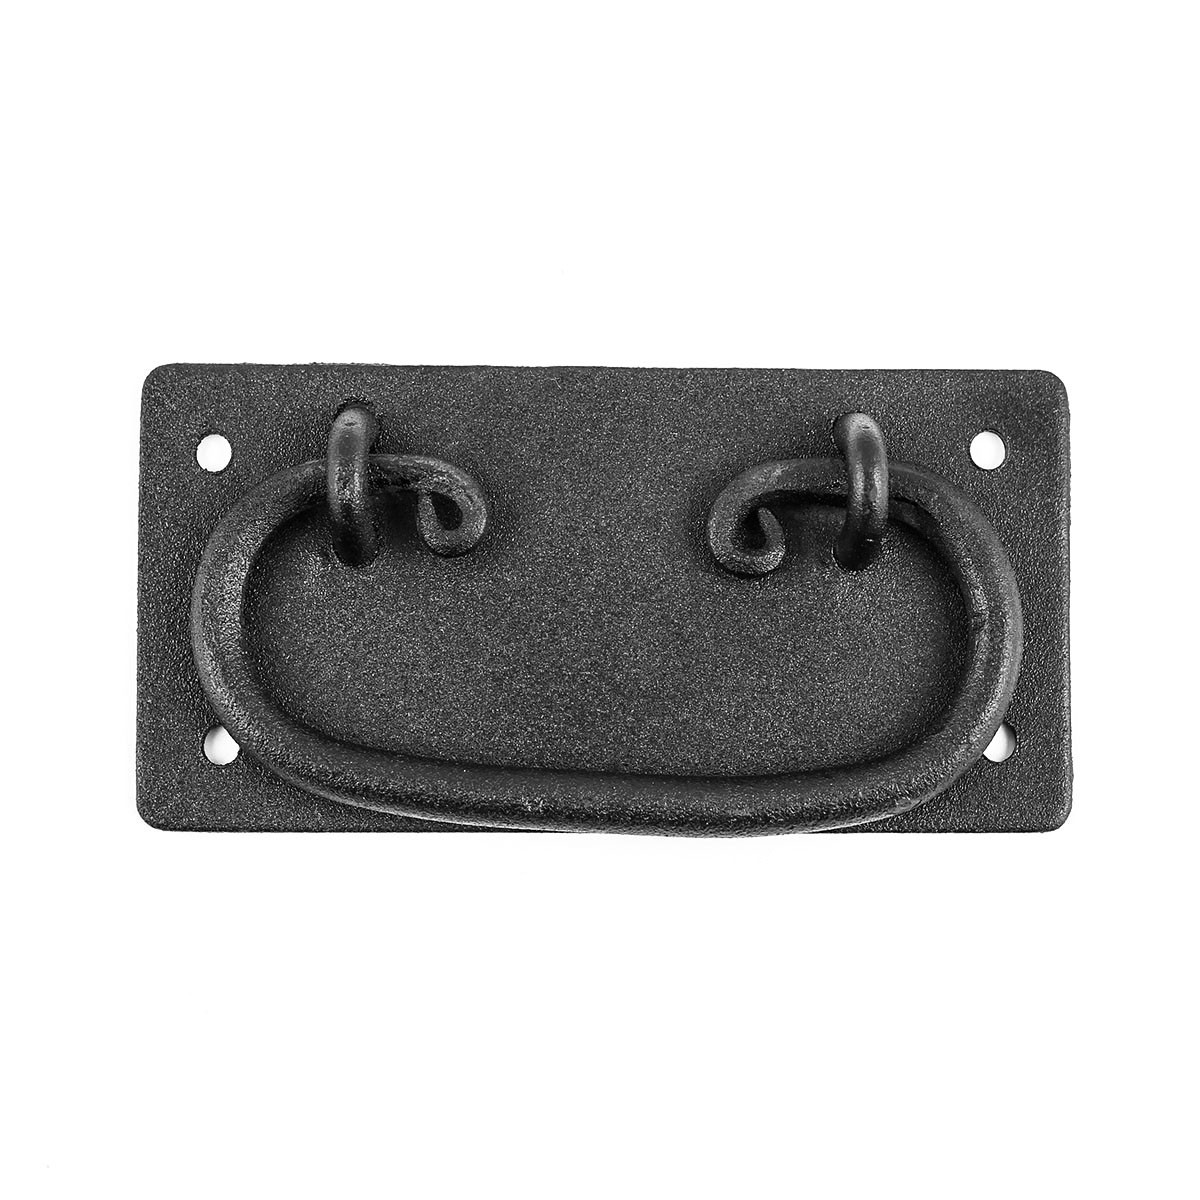 2 Cabinet Drawer Door Pull Black Wrought Iron Mission 4 Furniture Hardware Cabinet Pull Cabinet Hardware